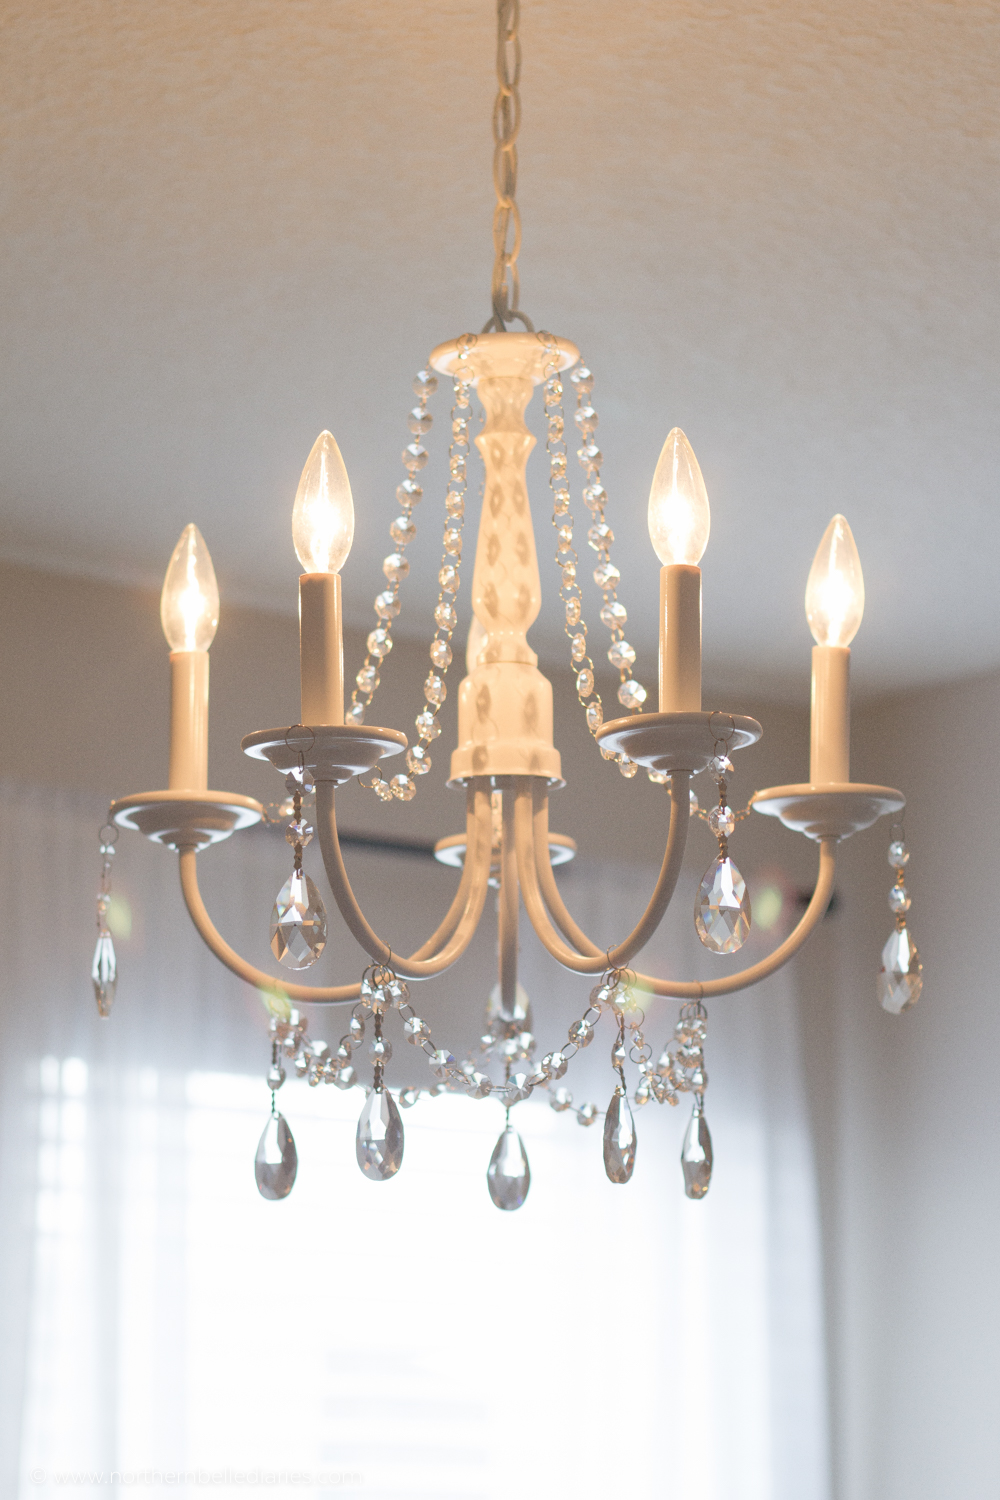 NorthernBelleDiaries Chandelier